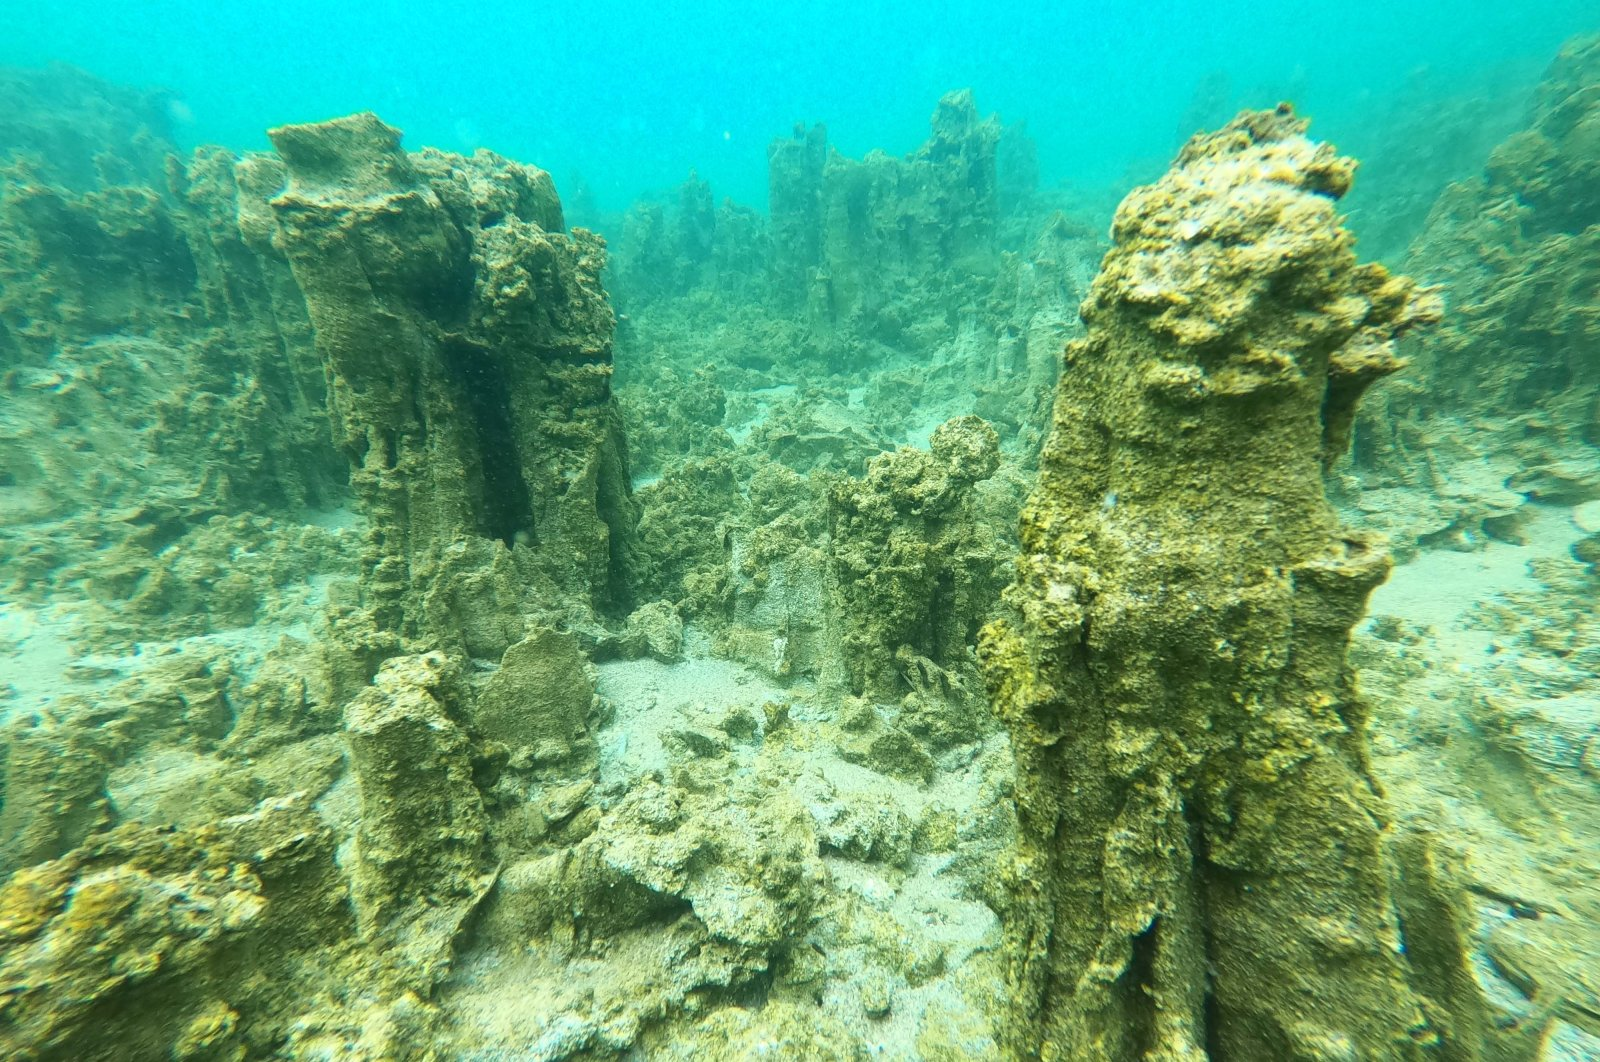 New microbialites different in structure and shape compared to previous discoveries have been found in Turkey's eastern Lake Van. (AA Photo)